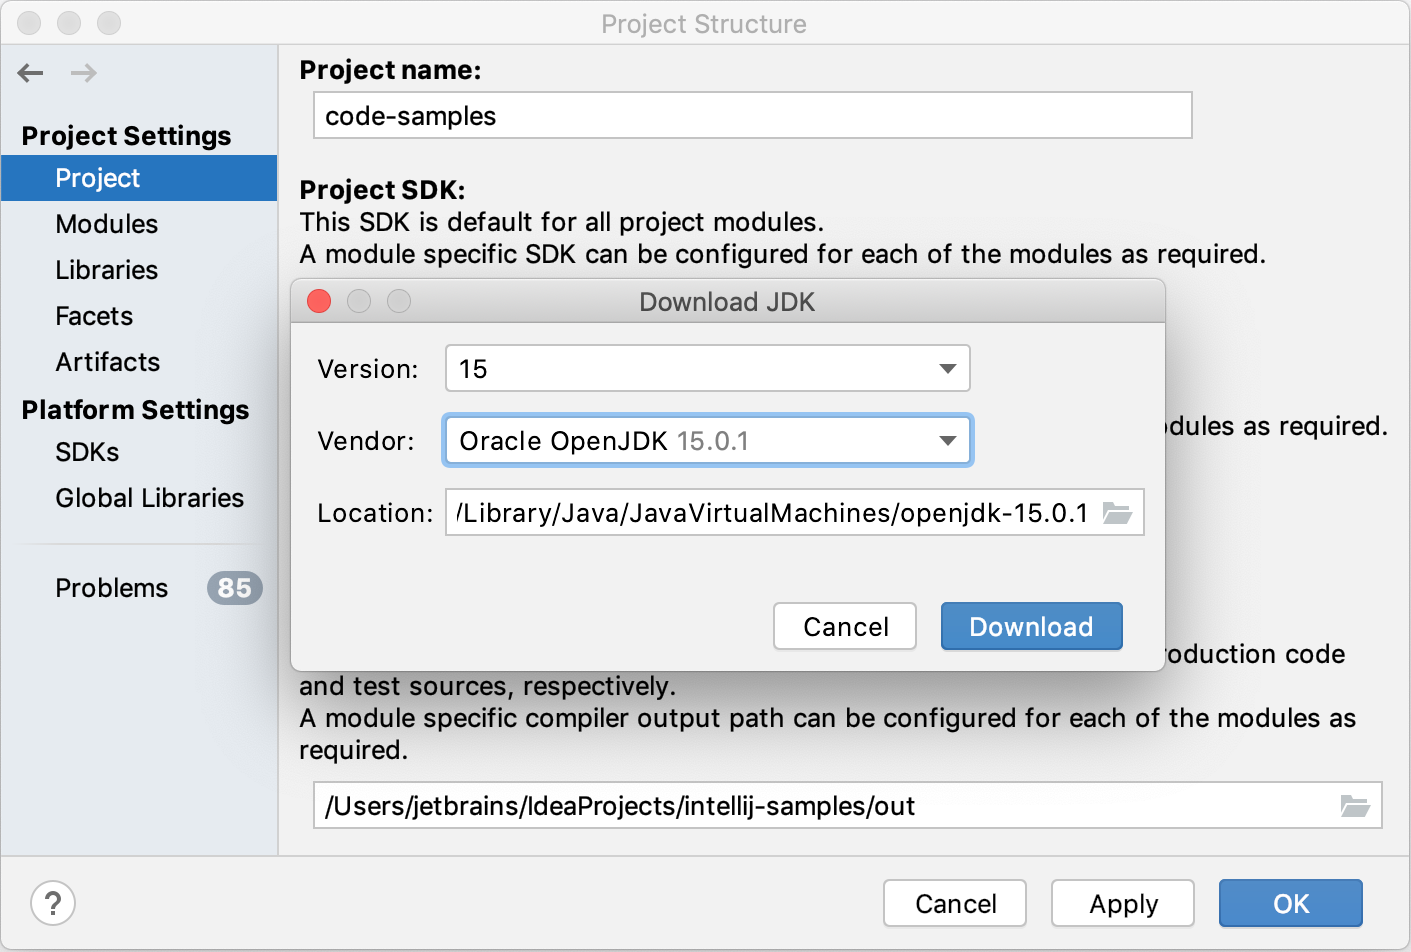 Setting up the JDK for a project